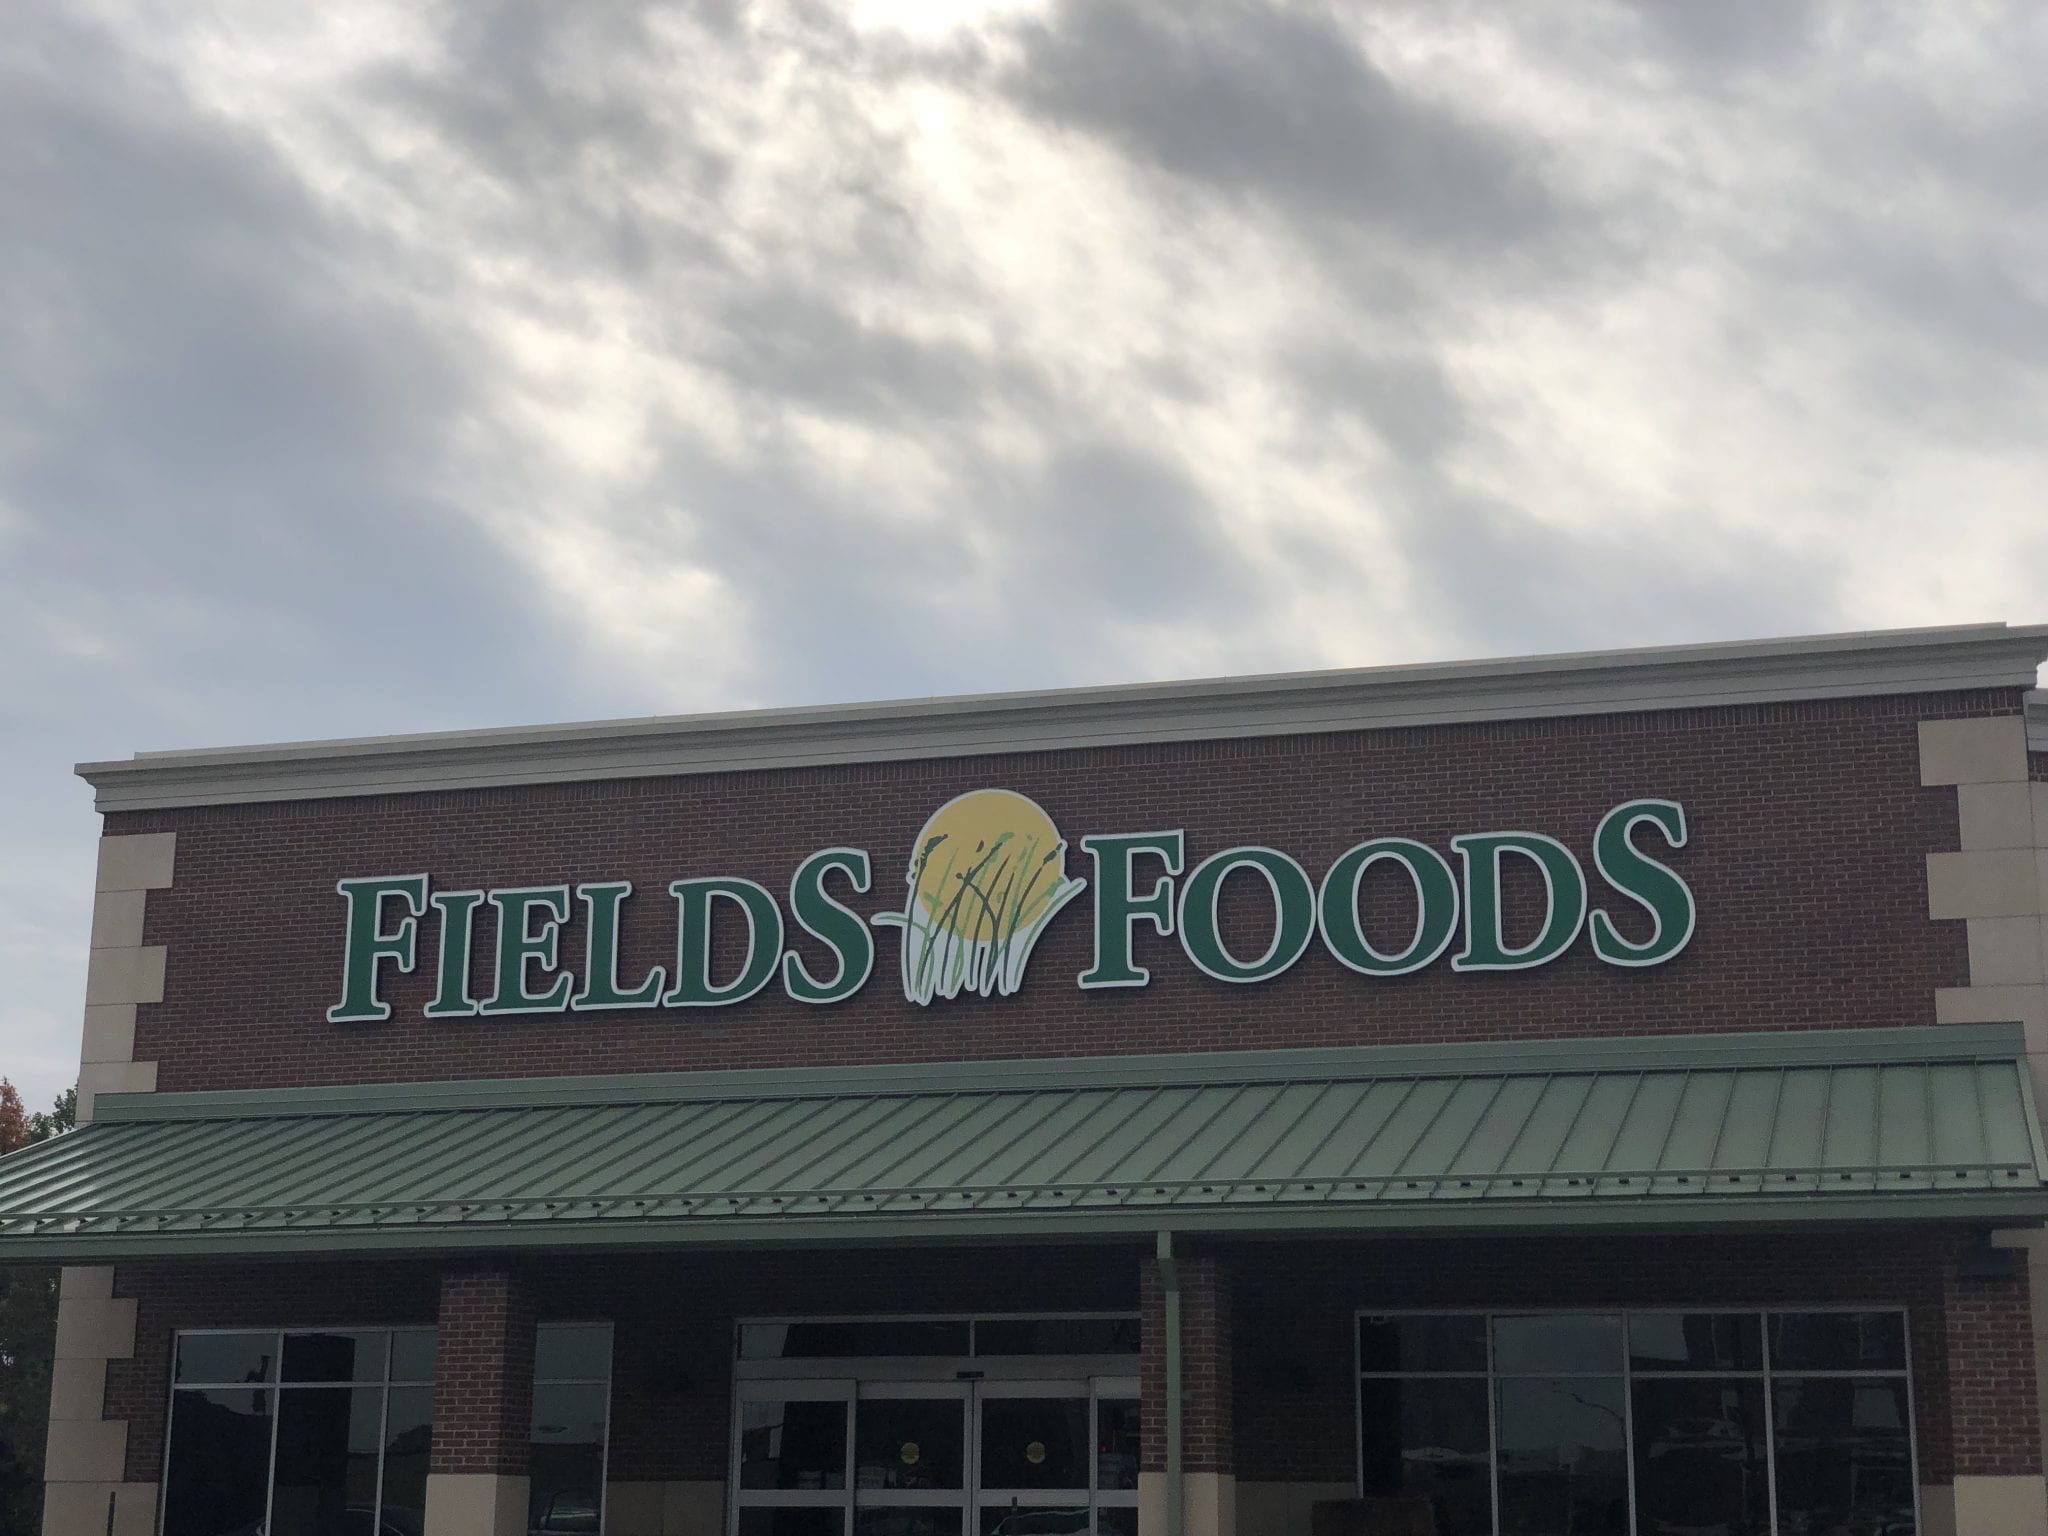 Business News: Fields Foods expands with second location in downtown St. Louis, two more locations planned this year